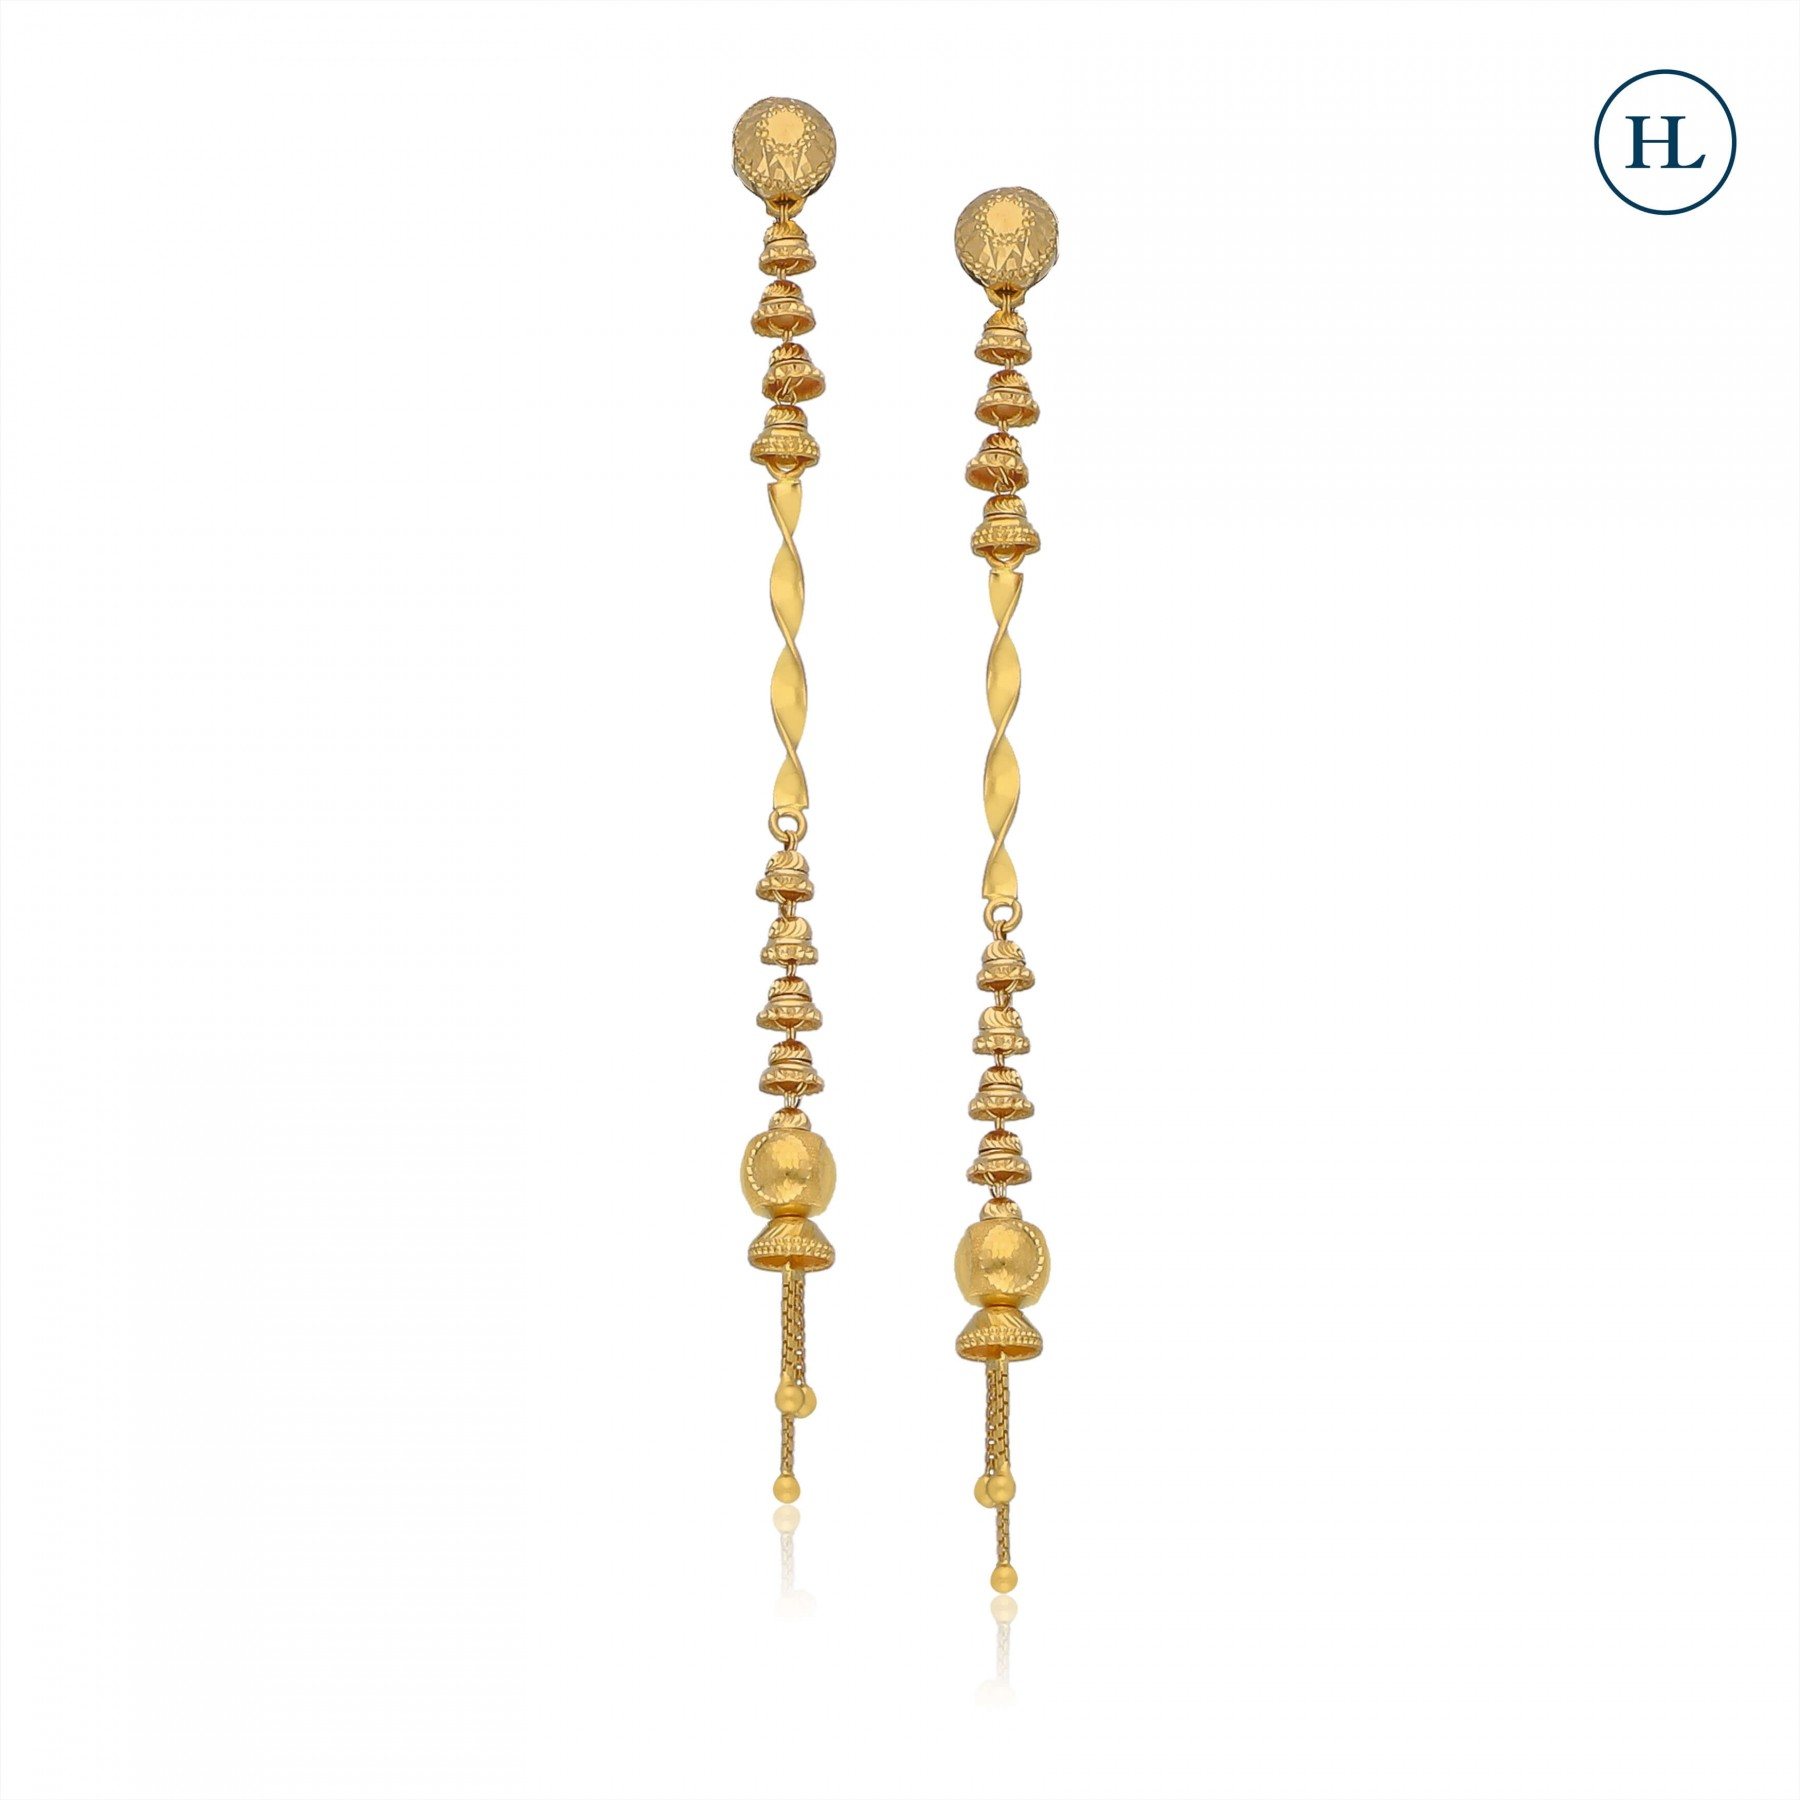 Curve And Cut Work Gold Earrings